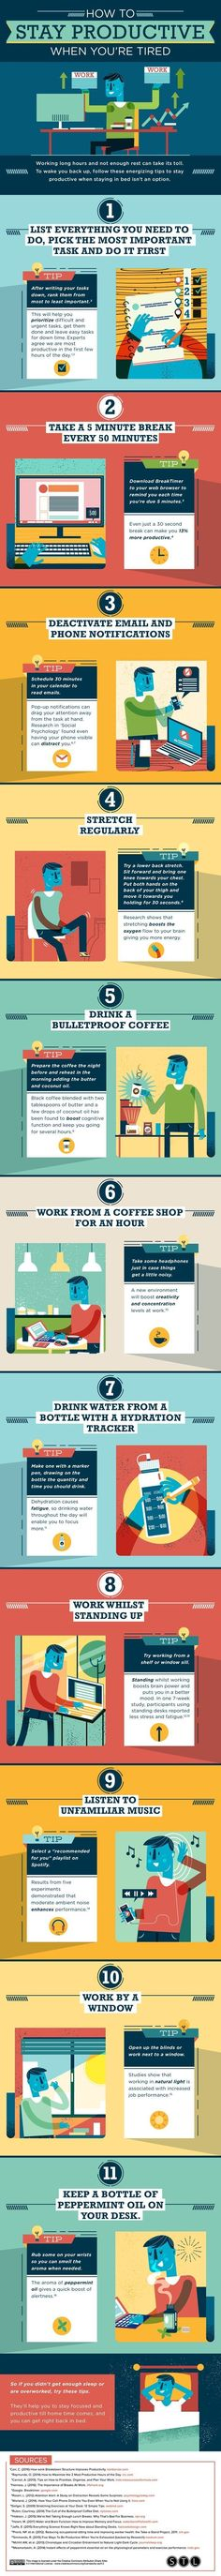 Productivity tips for small business owners, entrepreneurs, and bloggers! Wondering how to be productive all day? If you're on a deadline, the 11 tips on this infographic will help you stay productive when you're dragging! #productivitytips #entrepreneurs